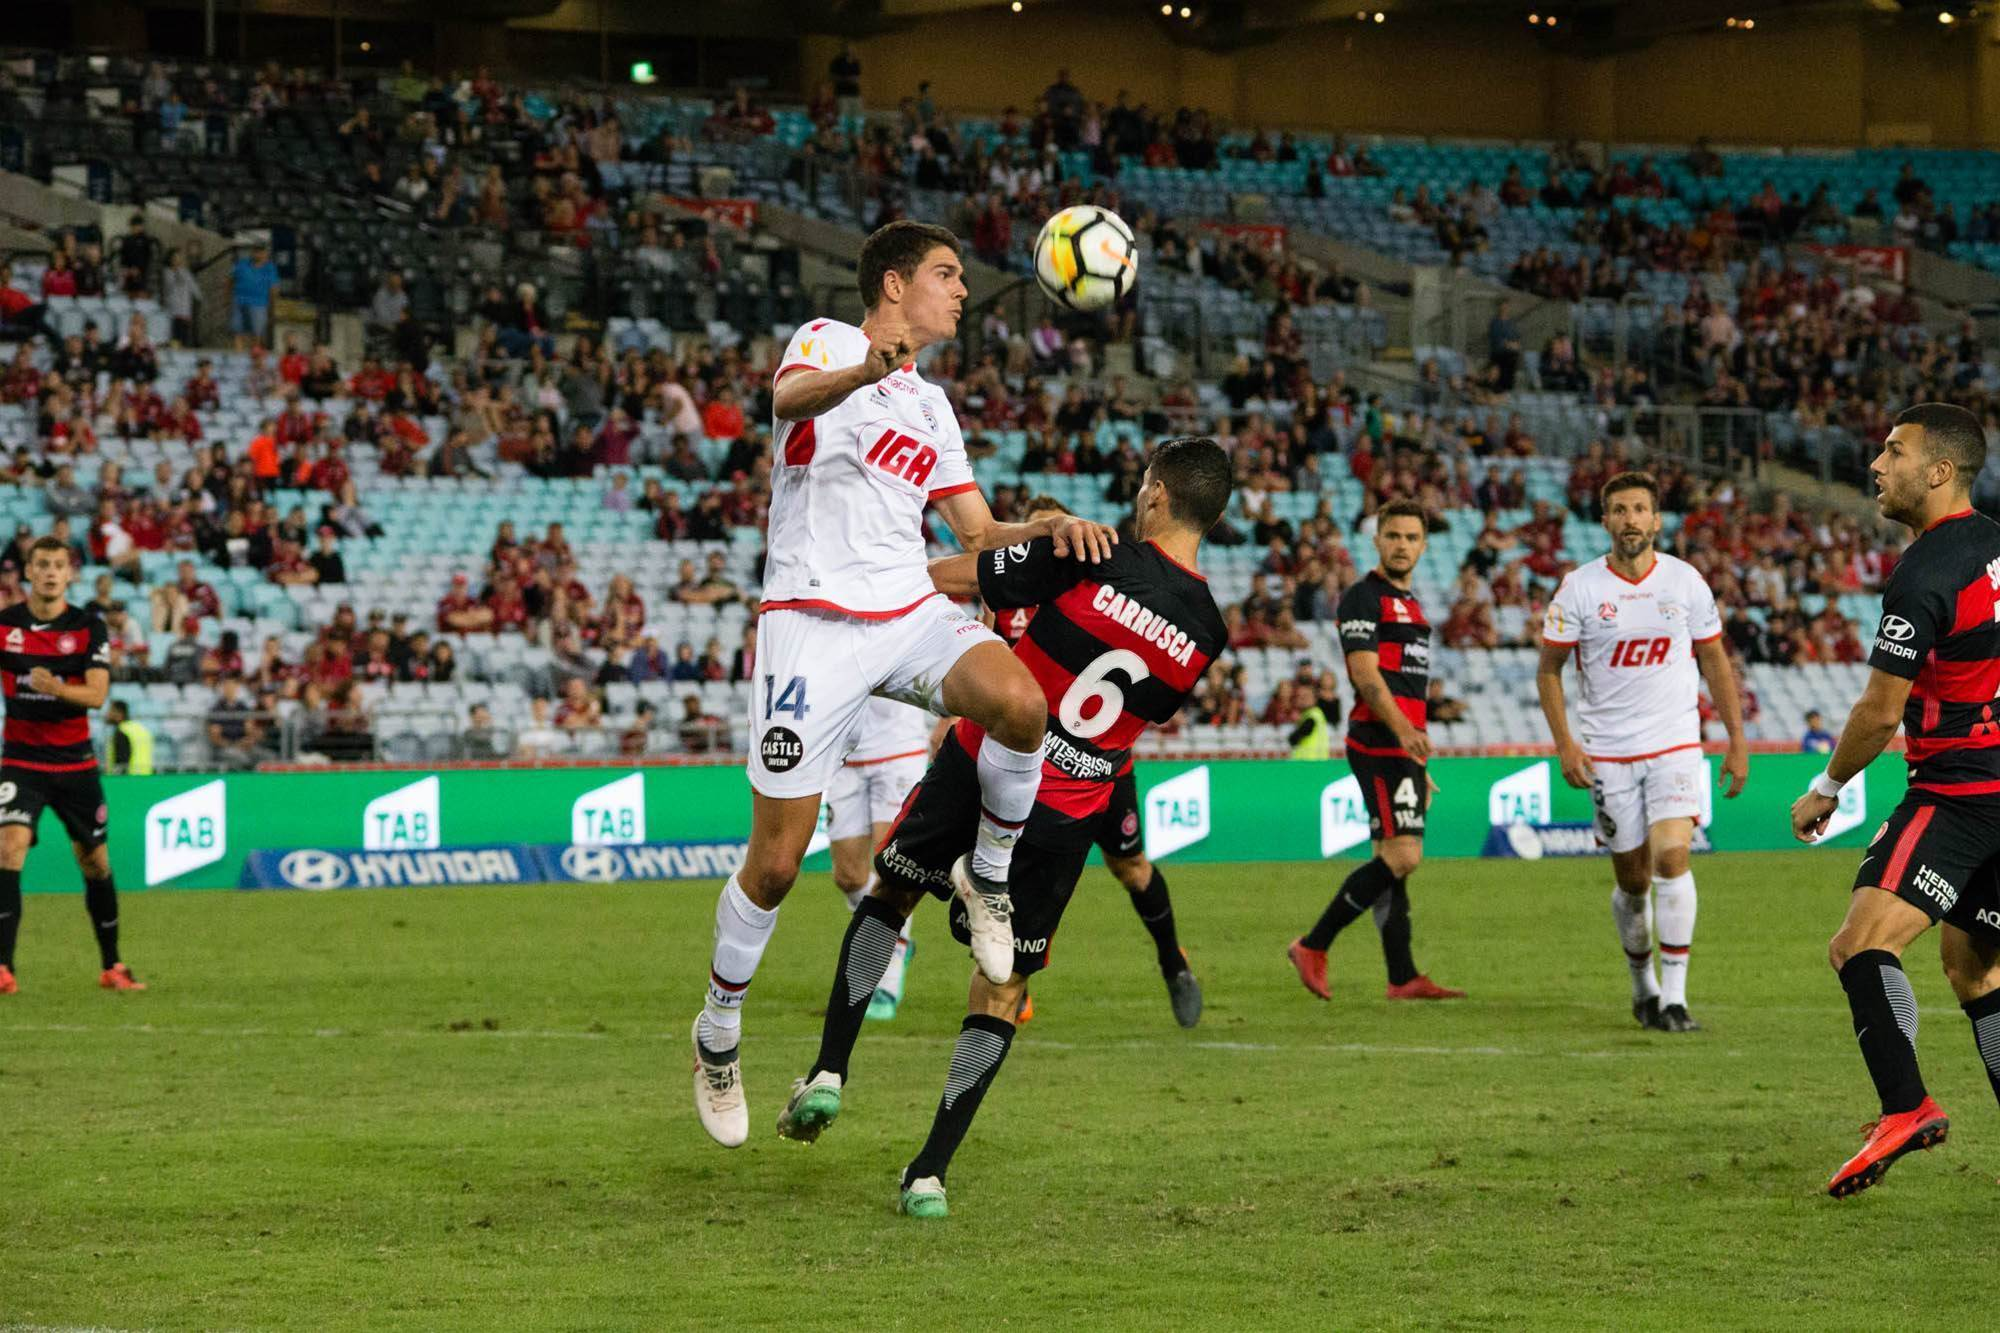 Western Sydney Wanderers v Adelaide United pic special